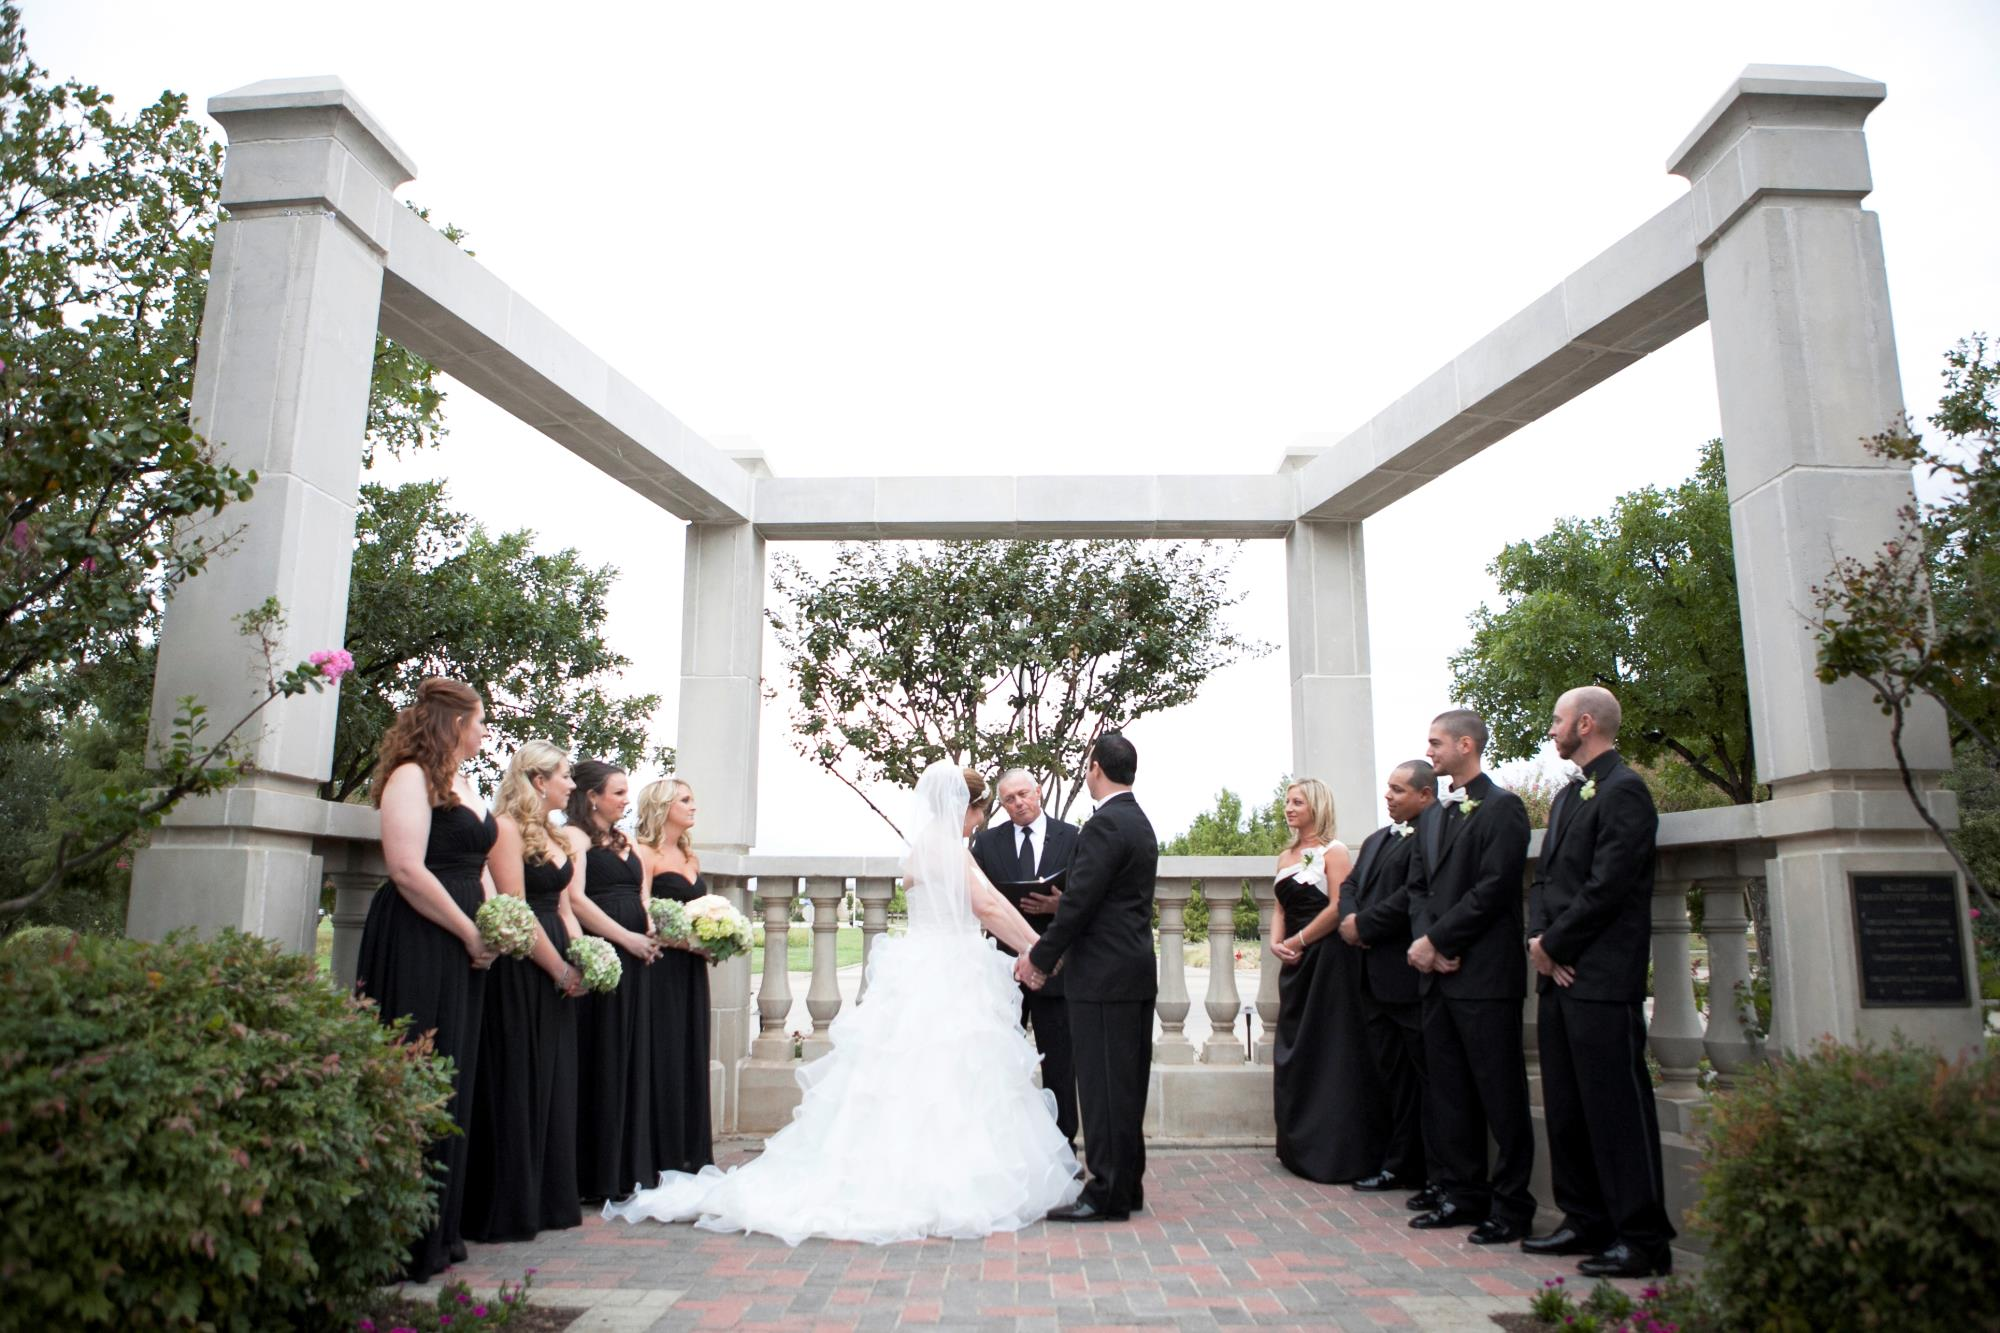 Colleyville center balustrada wedding ceremony